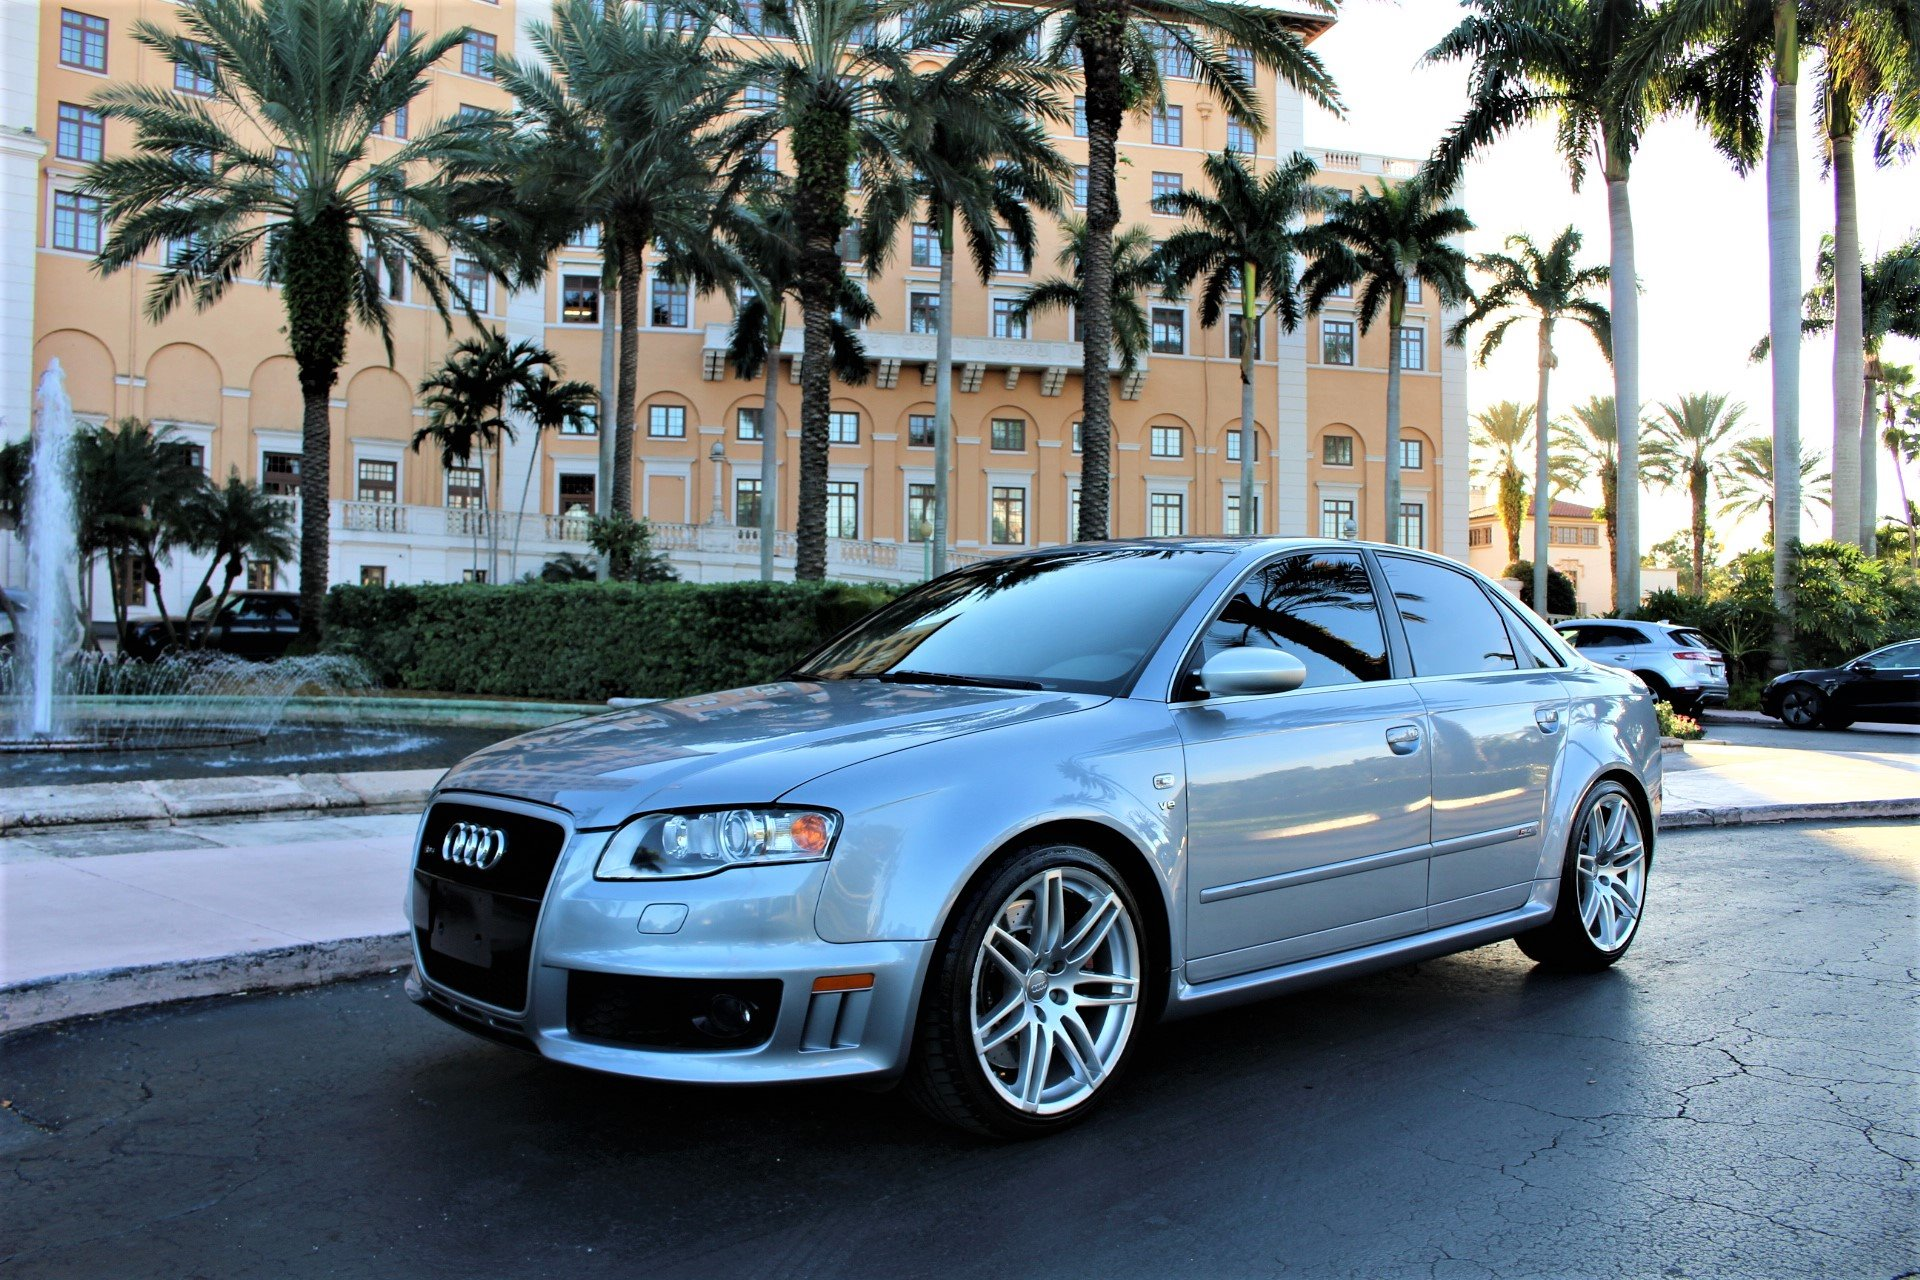 Used 2008 Audi RS 4 quattro for sale $39,850 at The Gables Sports Cars in Miami FL 33146 3